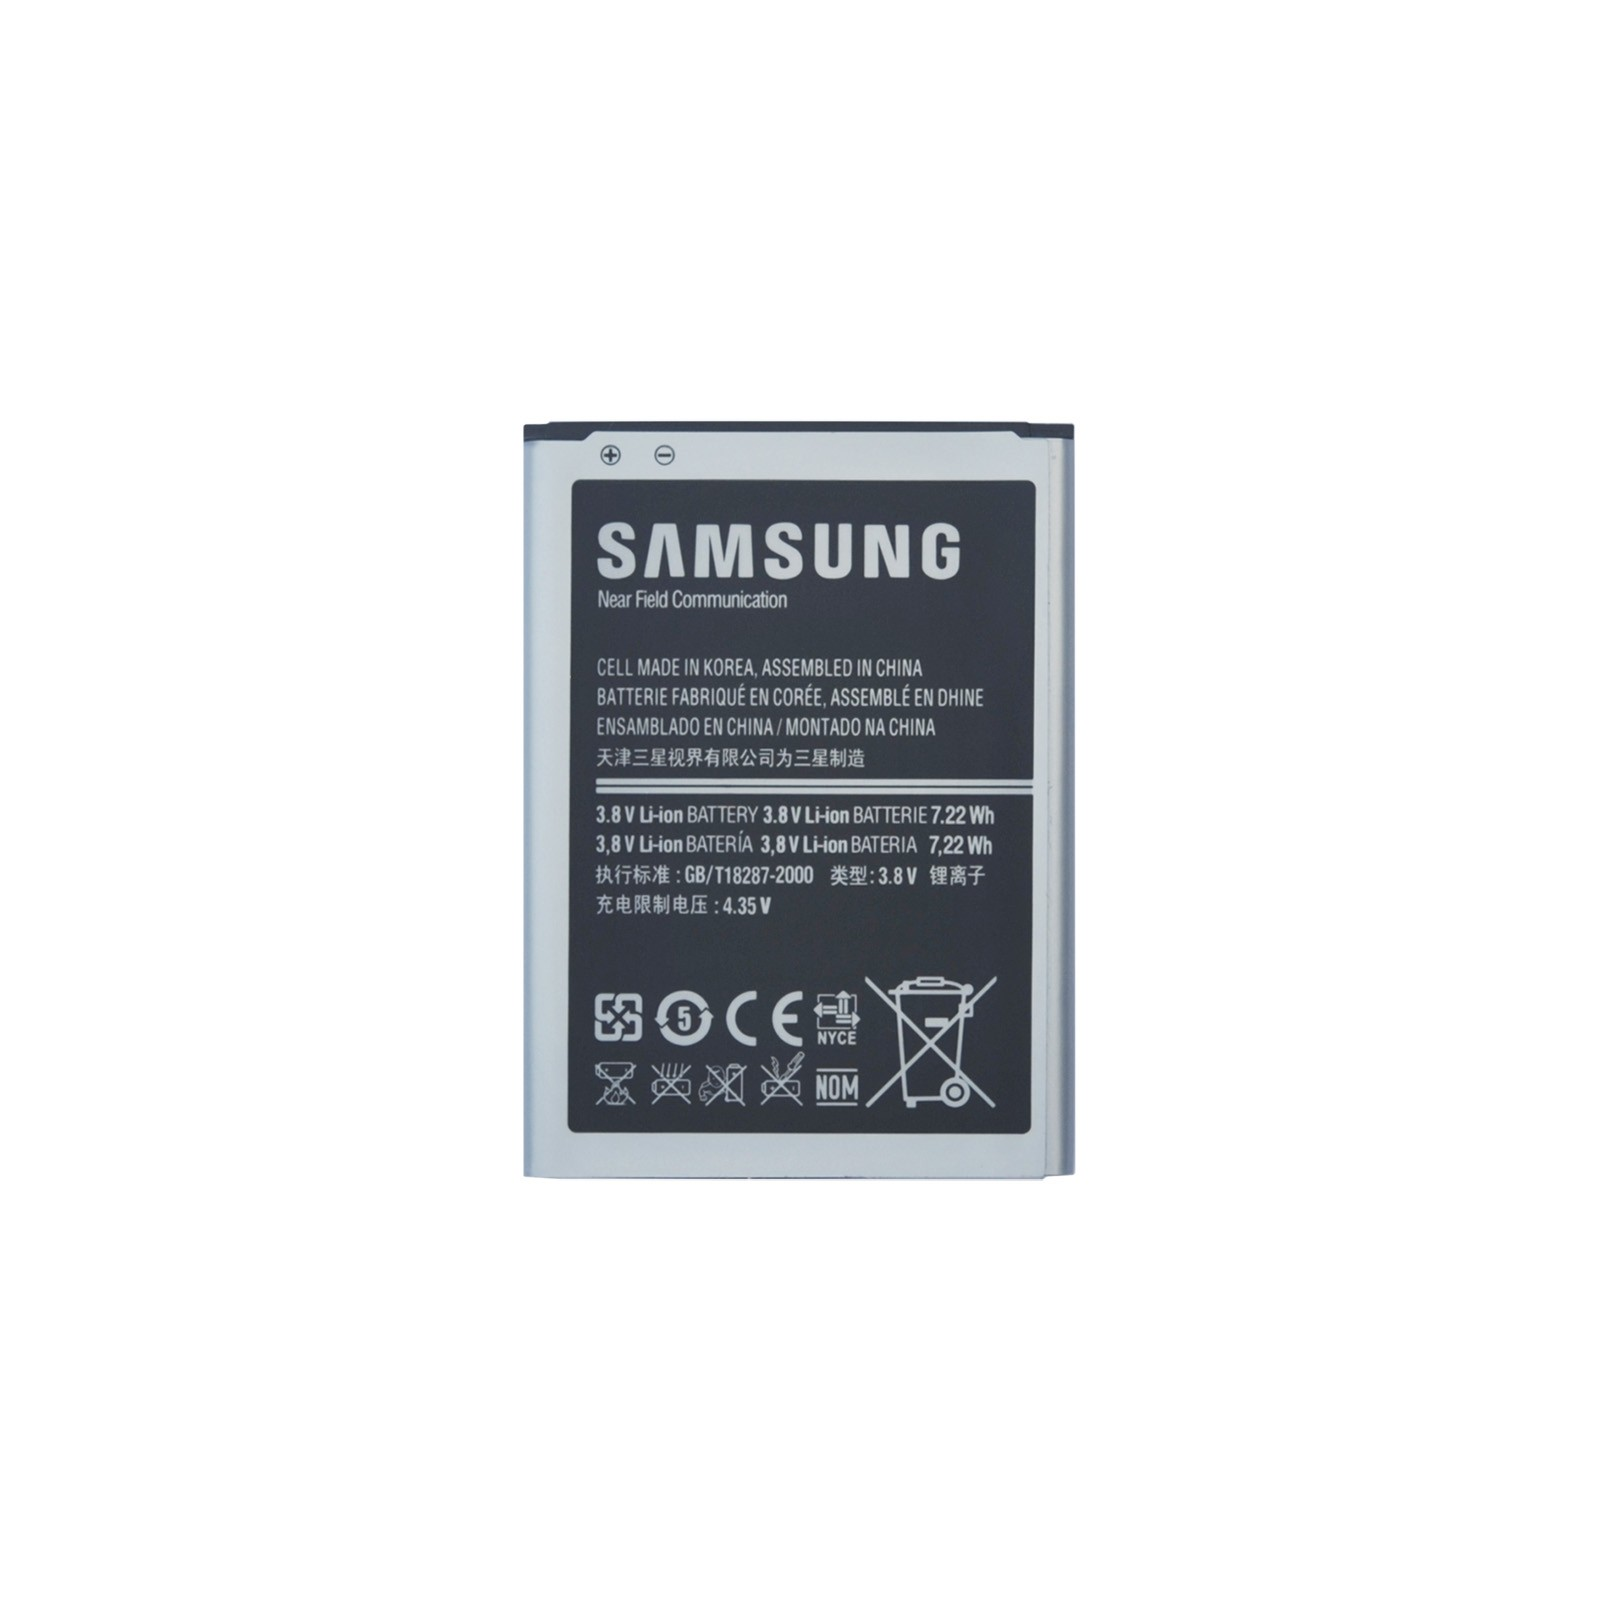 high capacity battery replacement for samsung galaxy s4 mini i9195. Black Bedroom Furniture Sets. Home Design Ideas